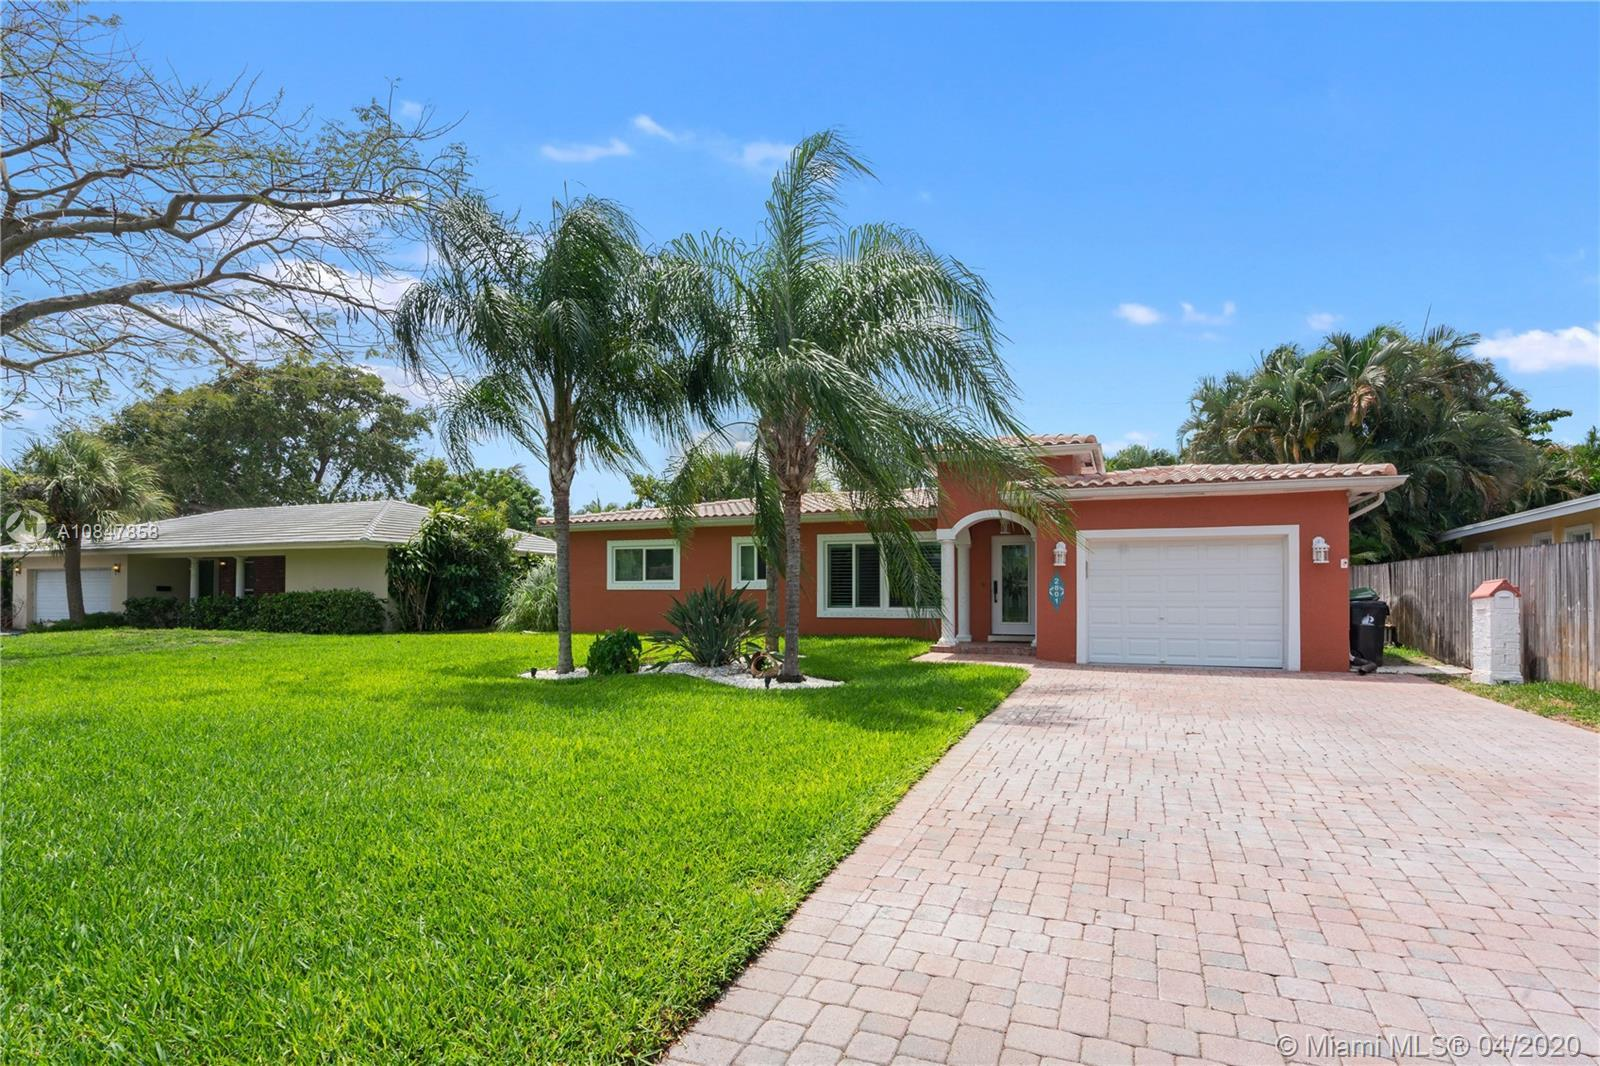 TRADITIONAL ISLAND STYLE TRANSLATES TO CASUALLY ELEGANT SOUTH FLORIDA LIVING IN THIS CORAL SHORES HO